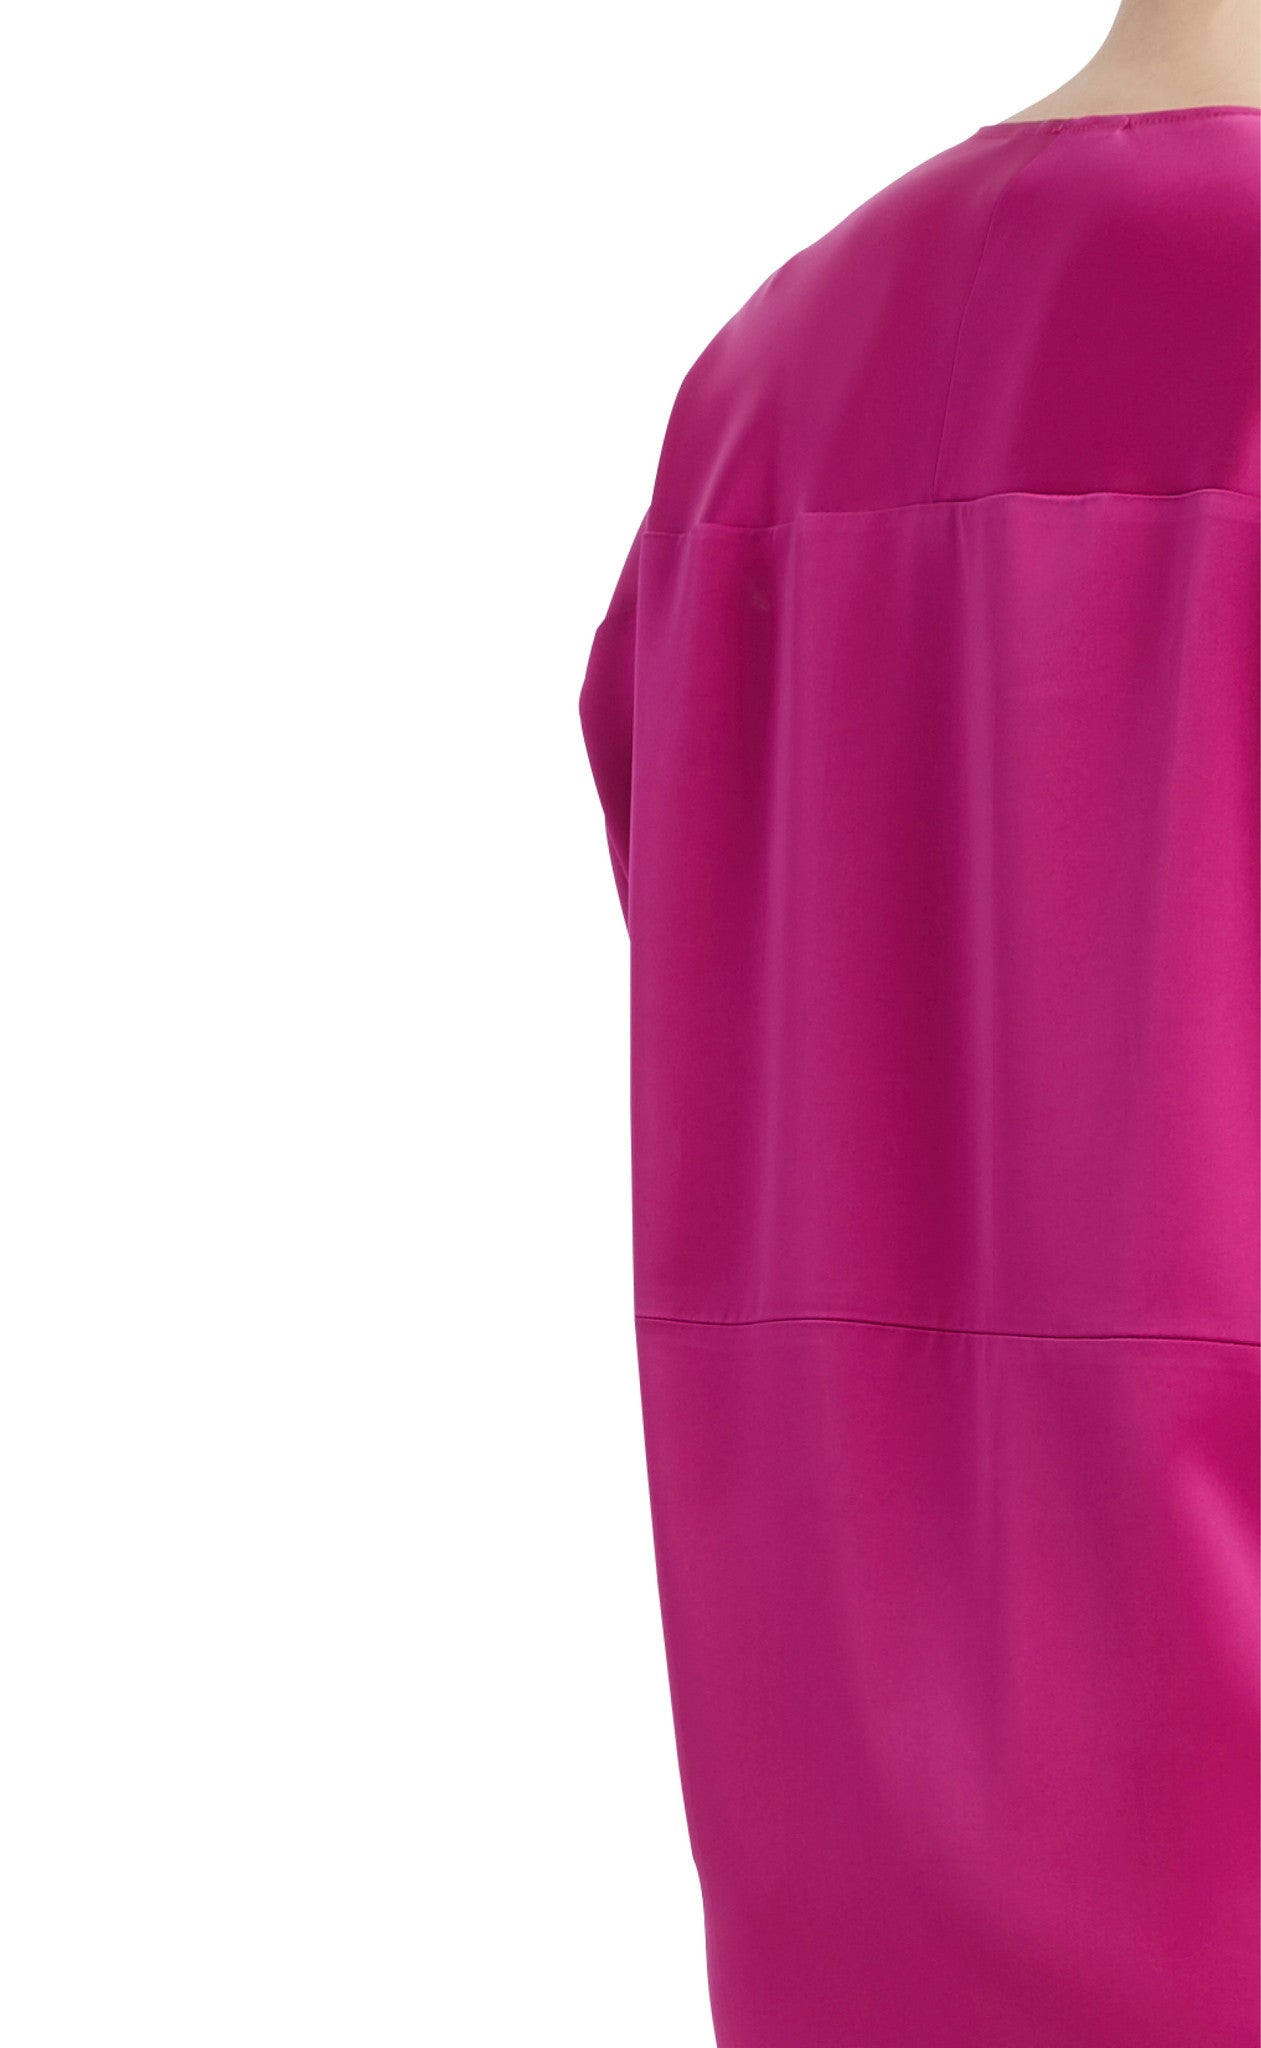 editions de robes SS17 collection cocktail mali fuchsia dress